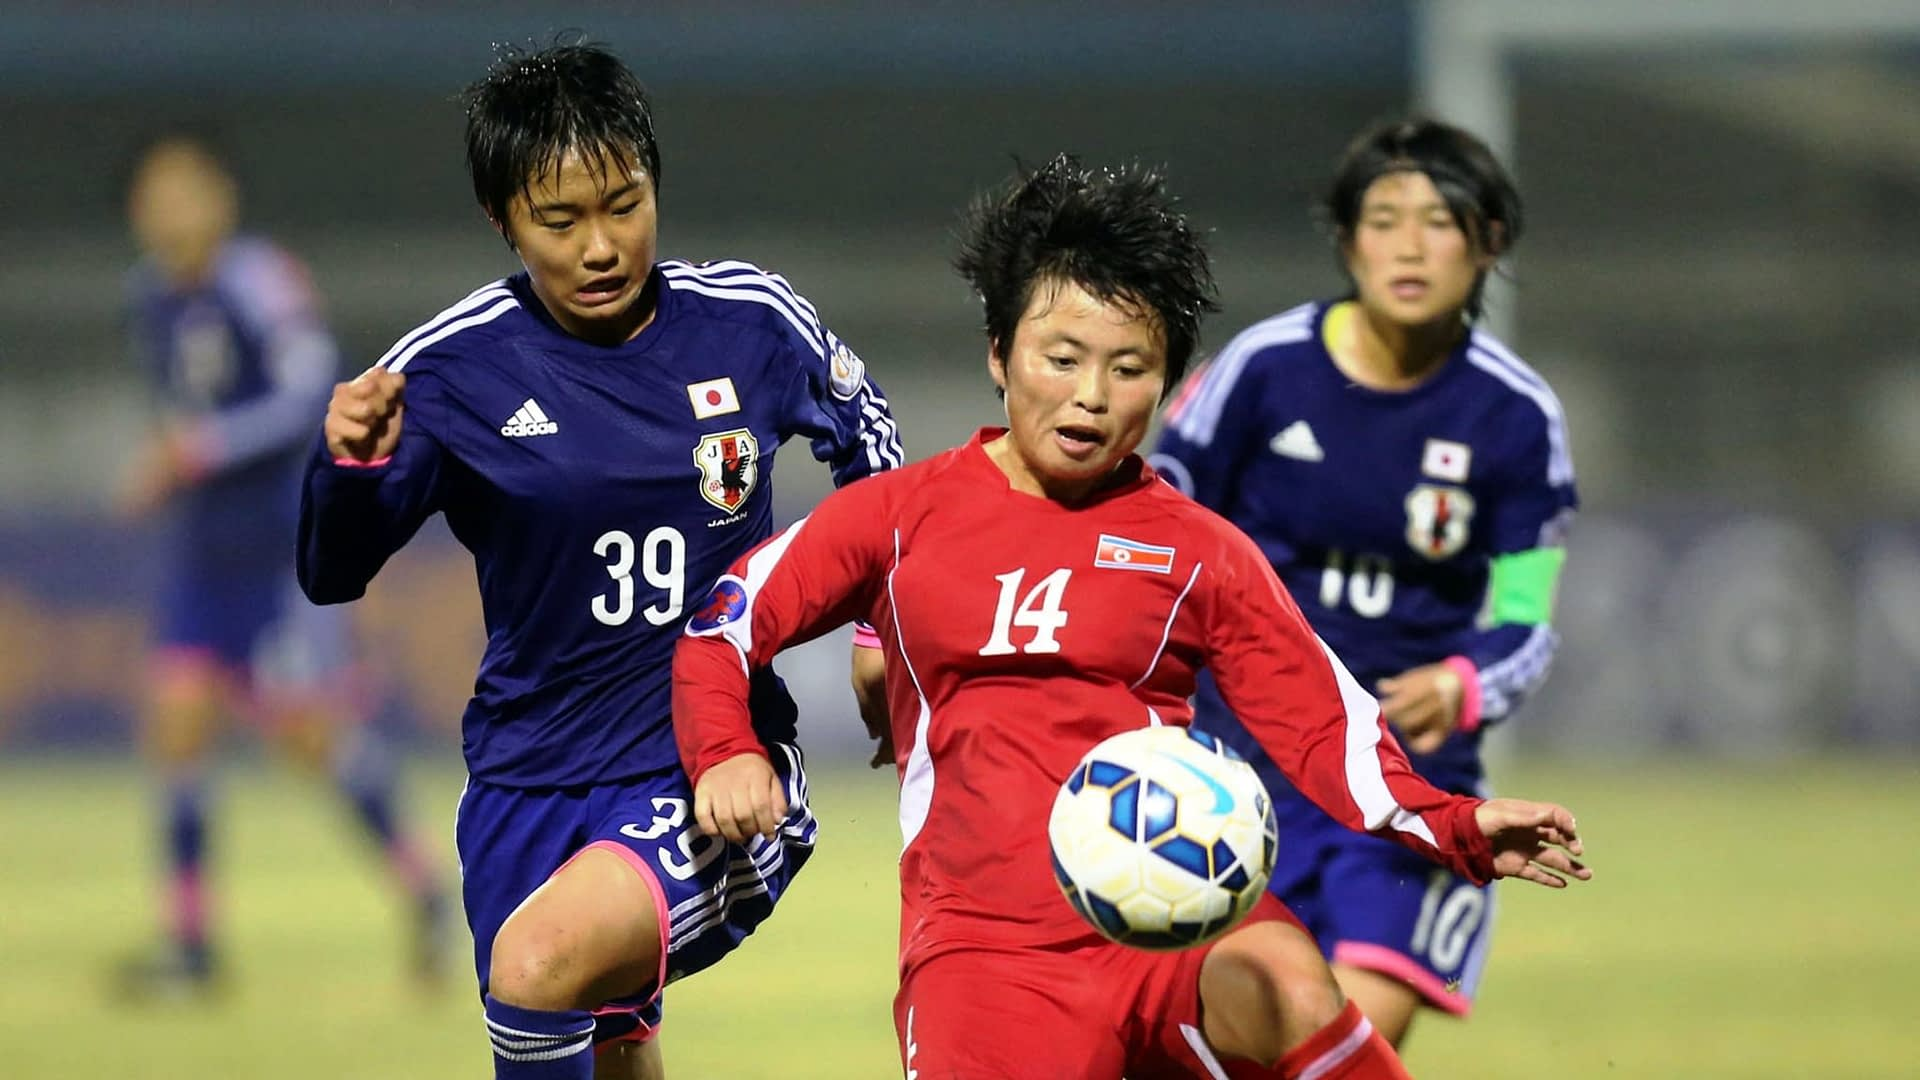 AFC U-16 Women's Championship: Action from the final match between Korea DPR and Japan